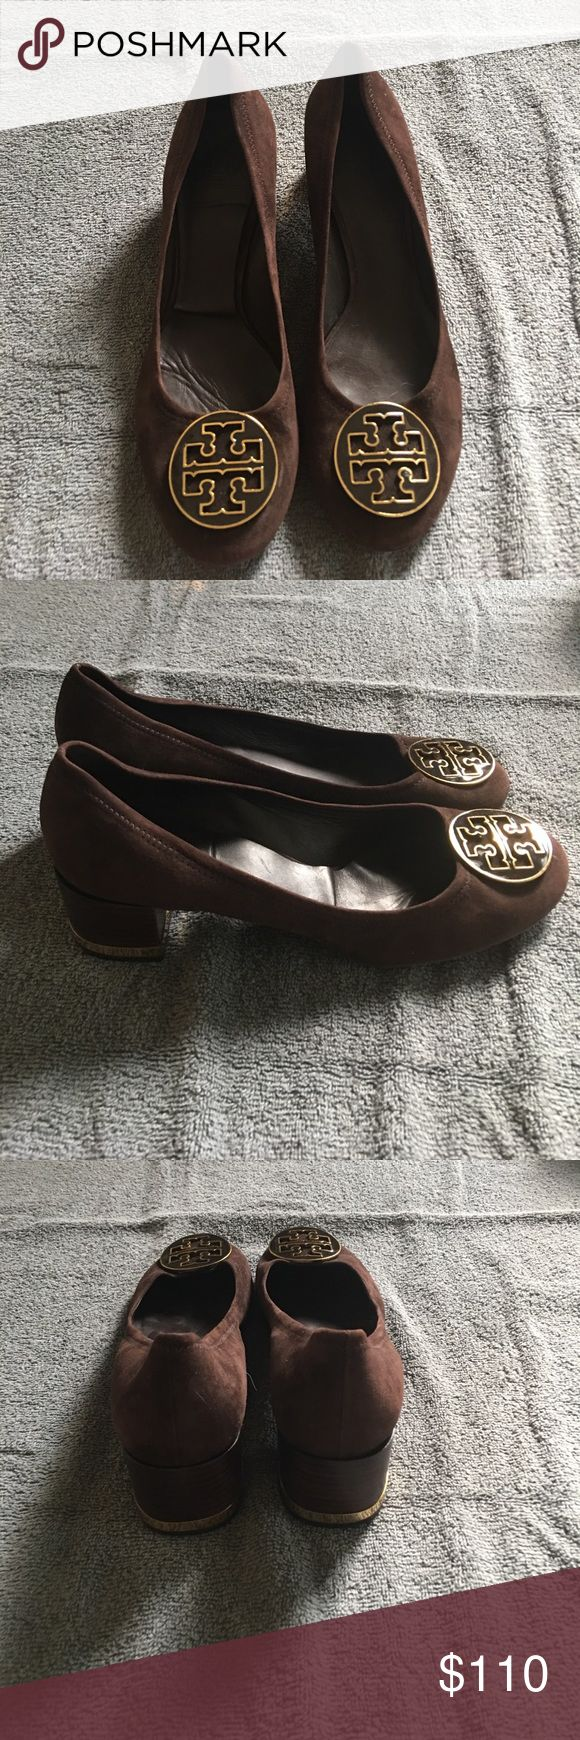 Tory Burch Heels. Firm price